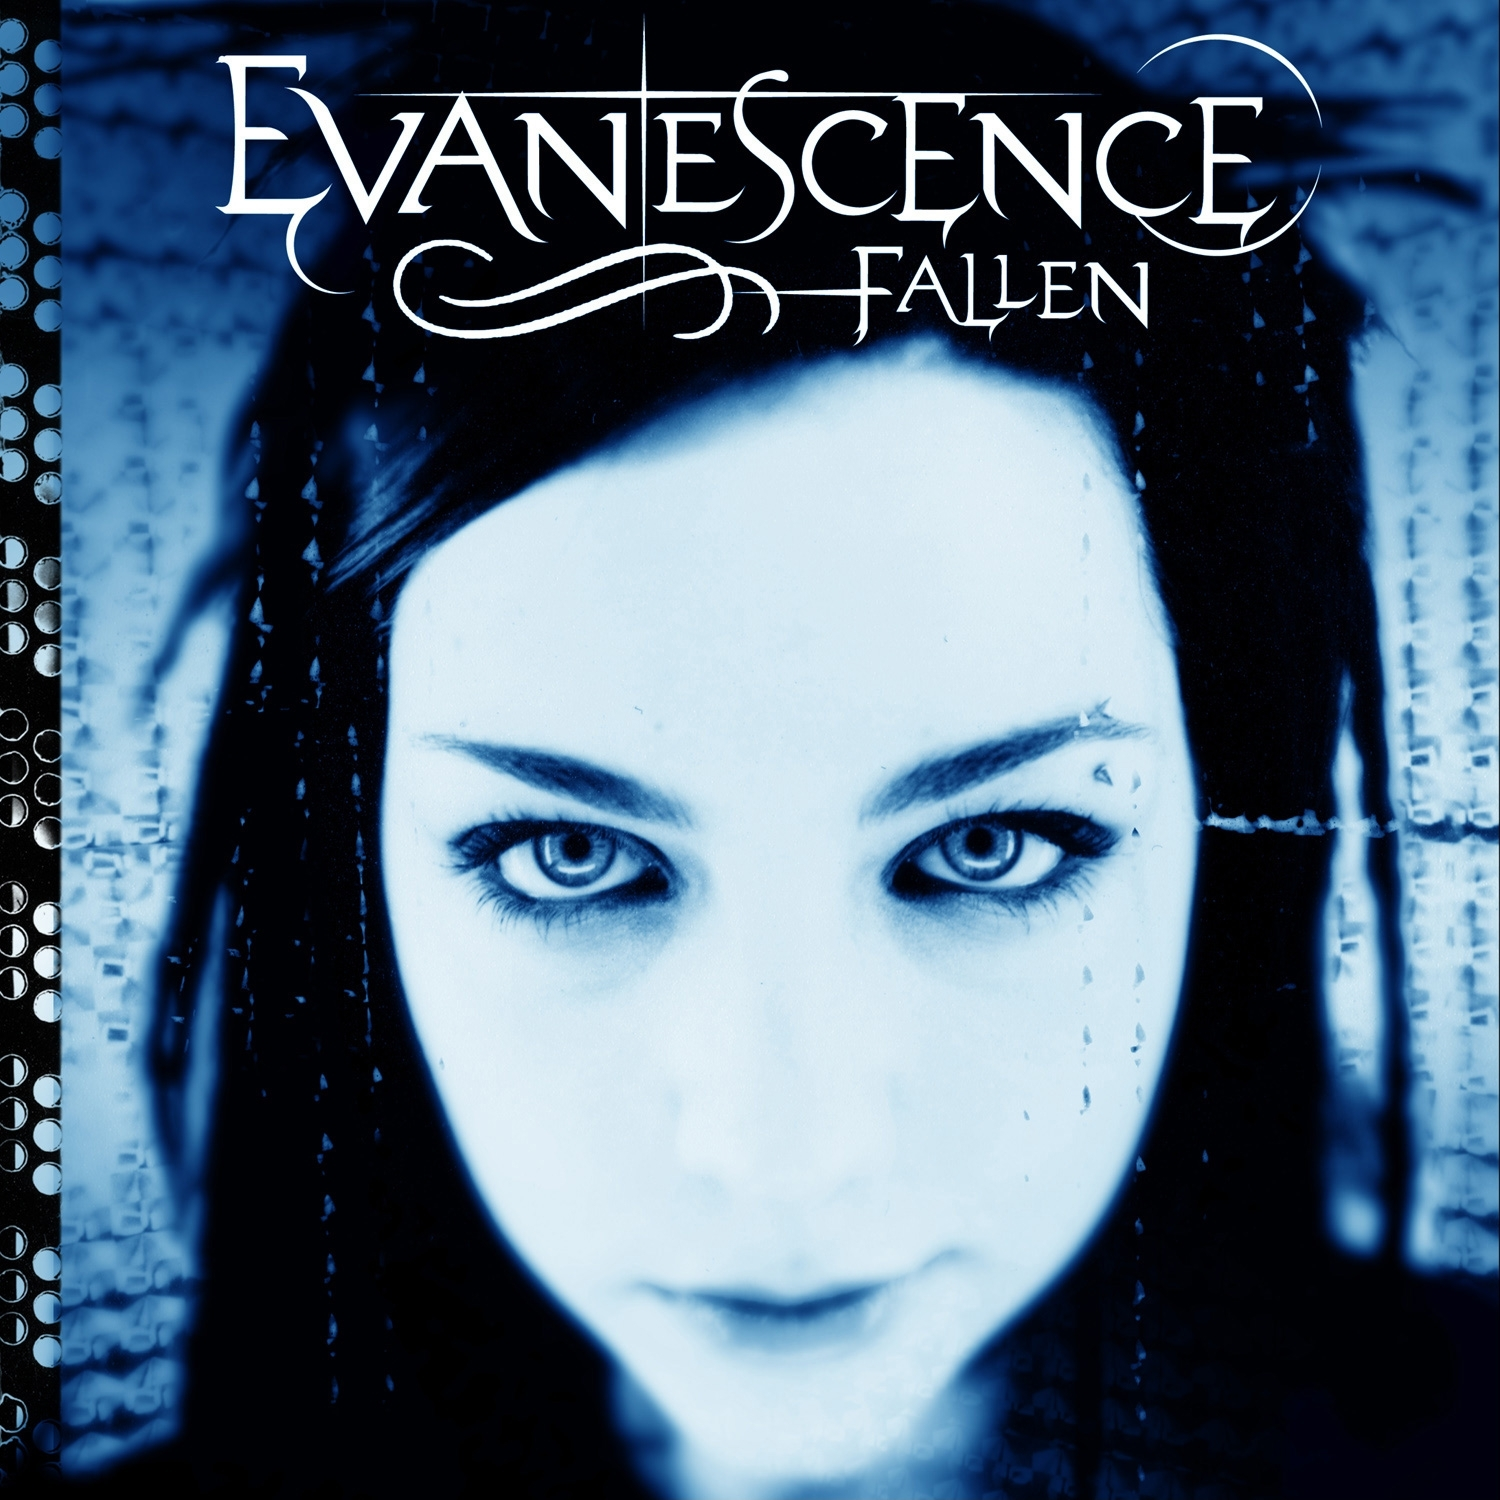 Evanescence: Fallen (2004) Book Cover